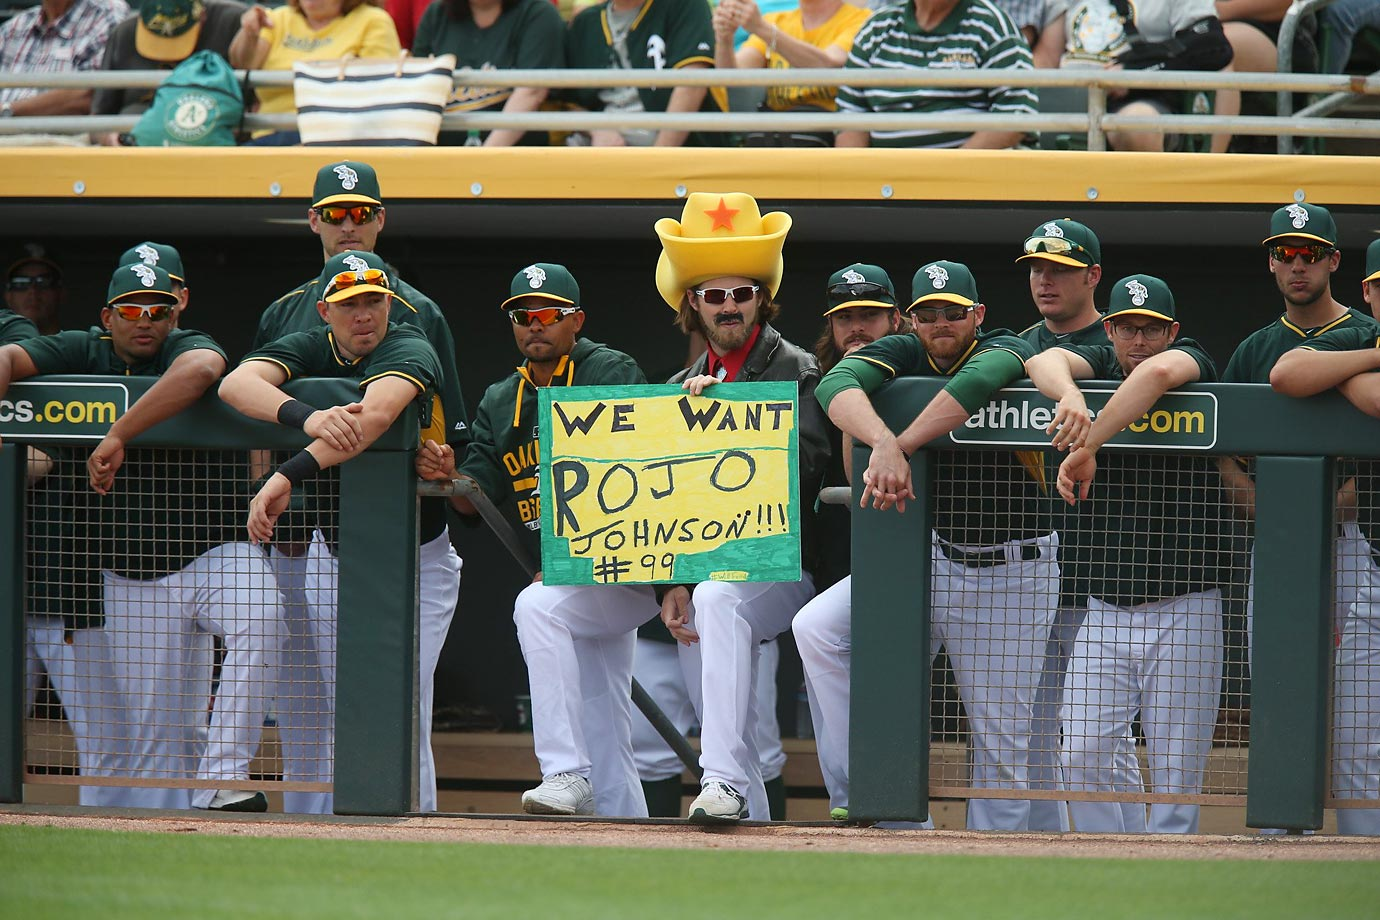 Josh Reddick cheers on Will Ferrell acting as Rojo Johnson on the mound.